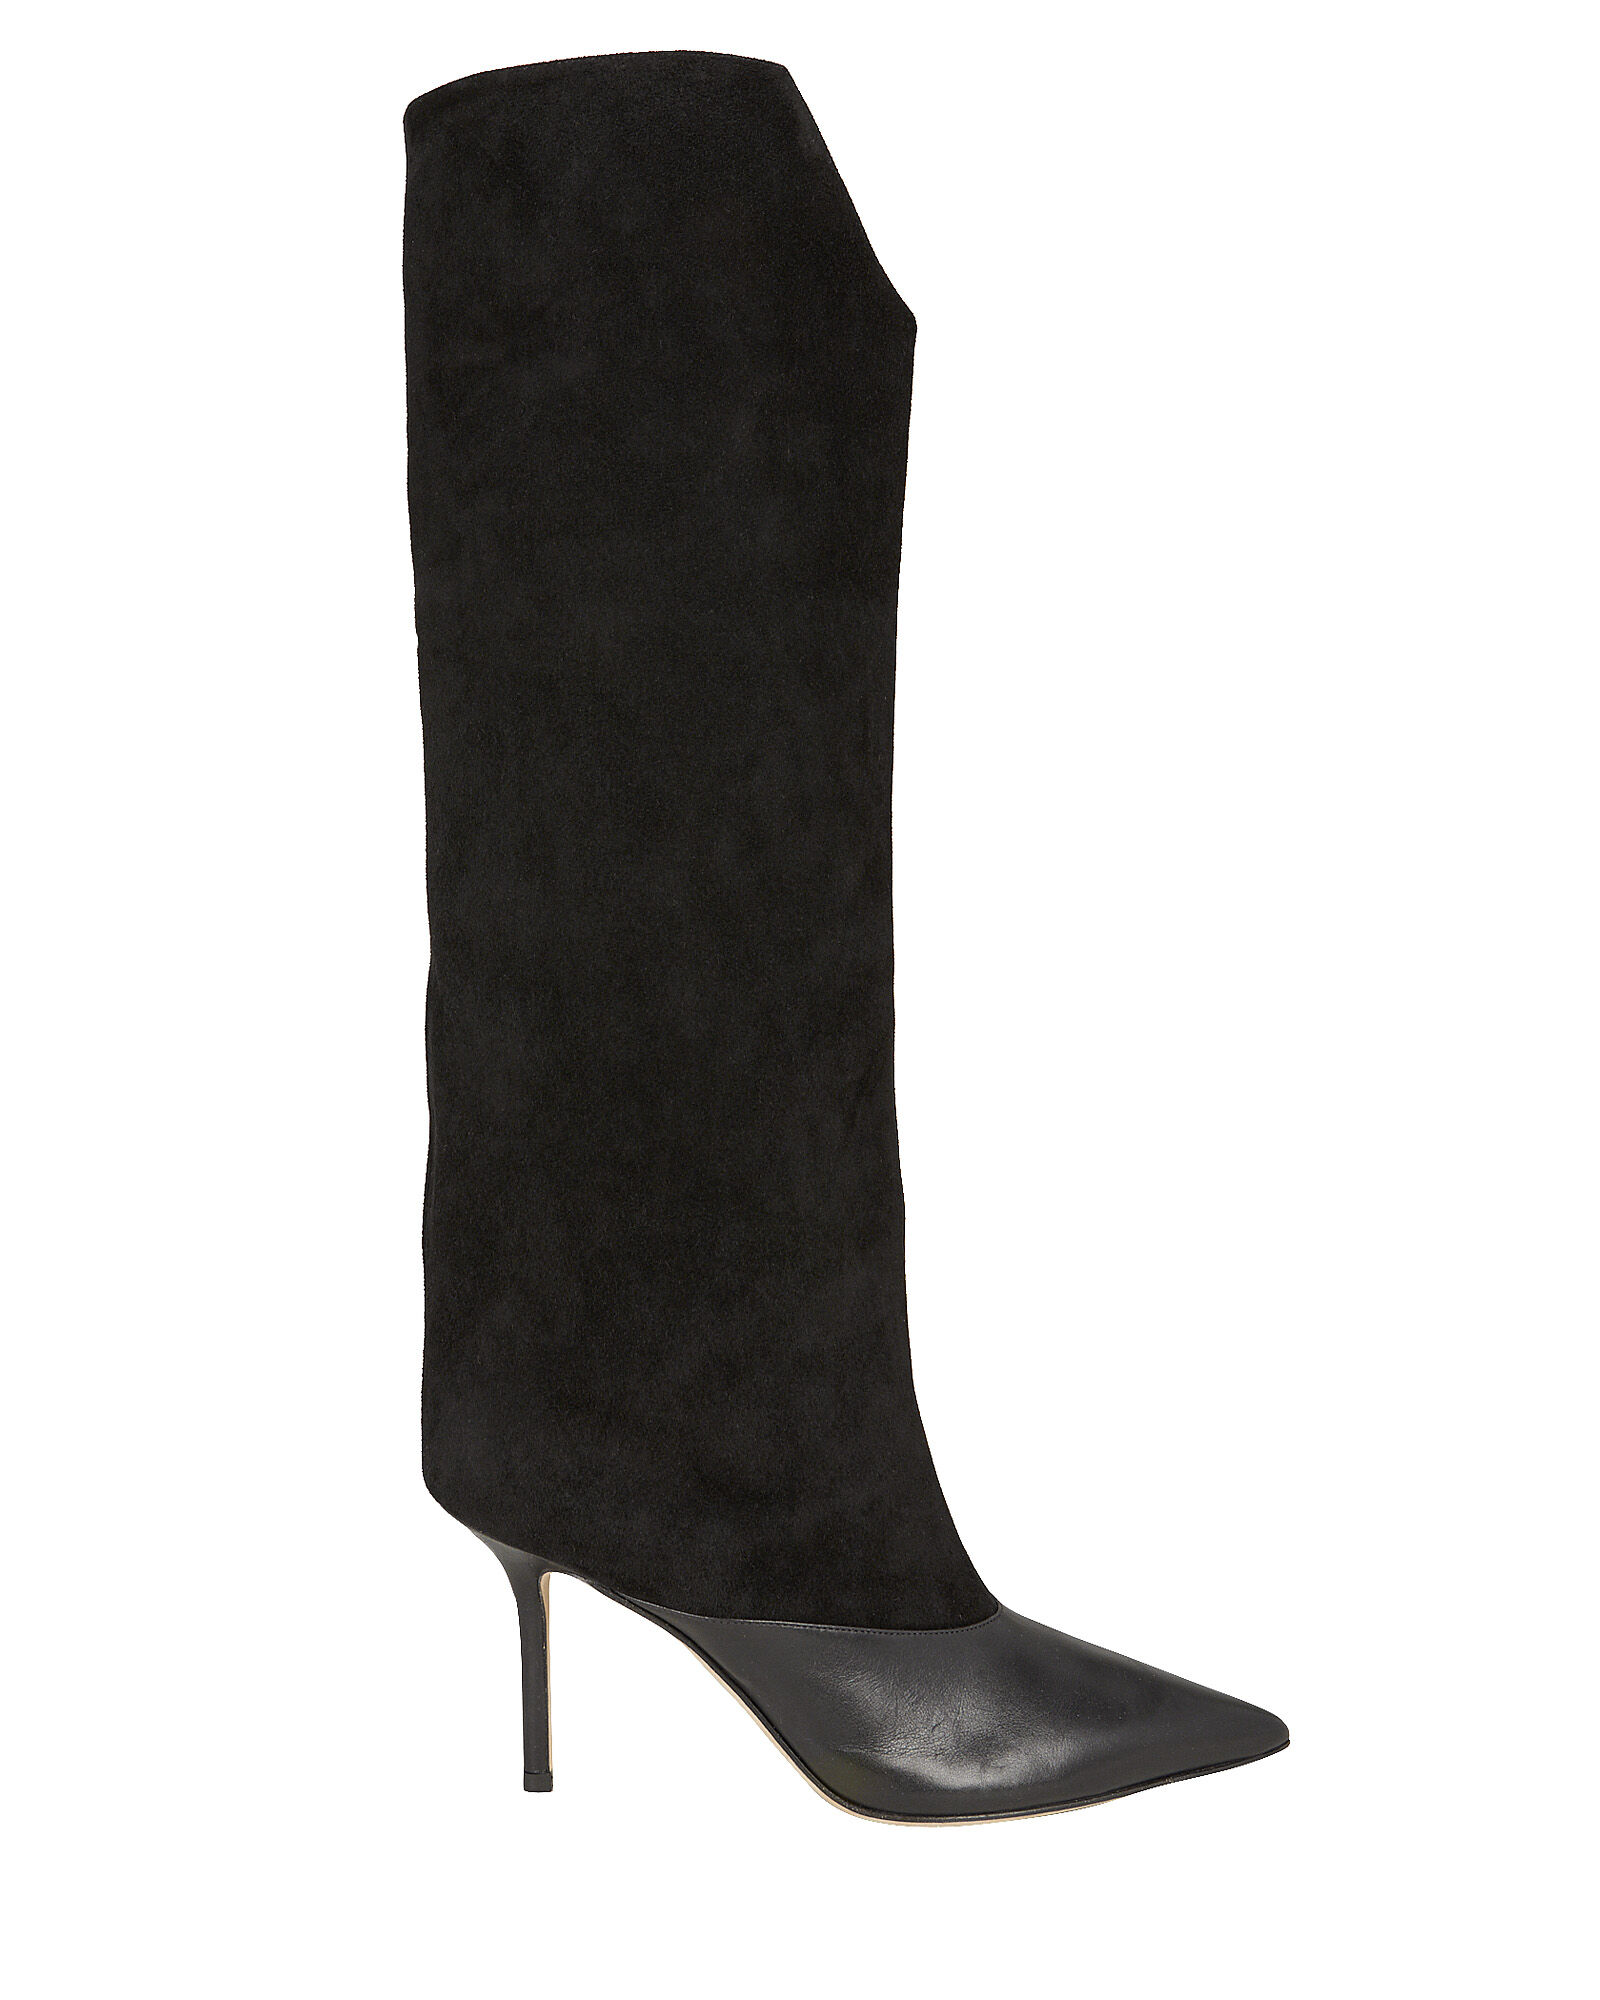 Brelan Knee-High Leather Boots, BLACK, hi-res